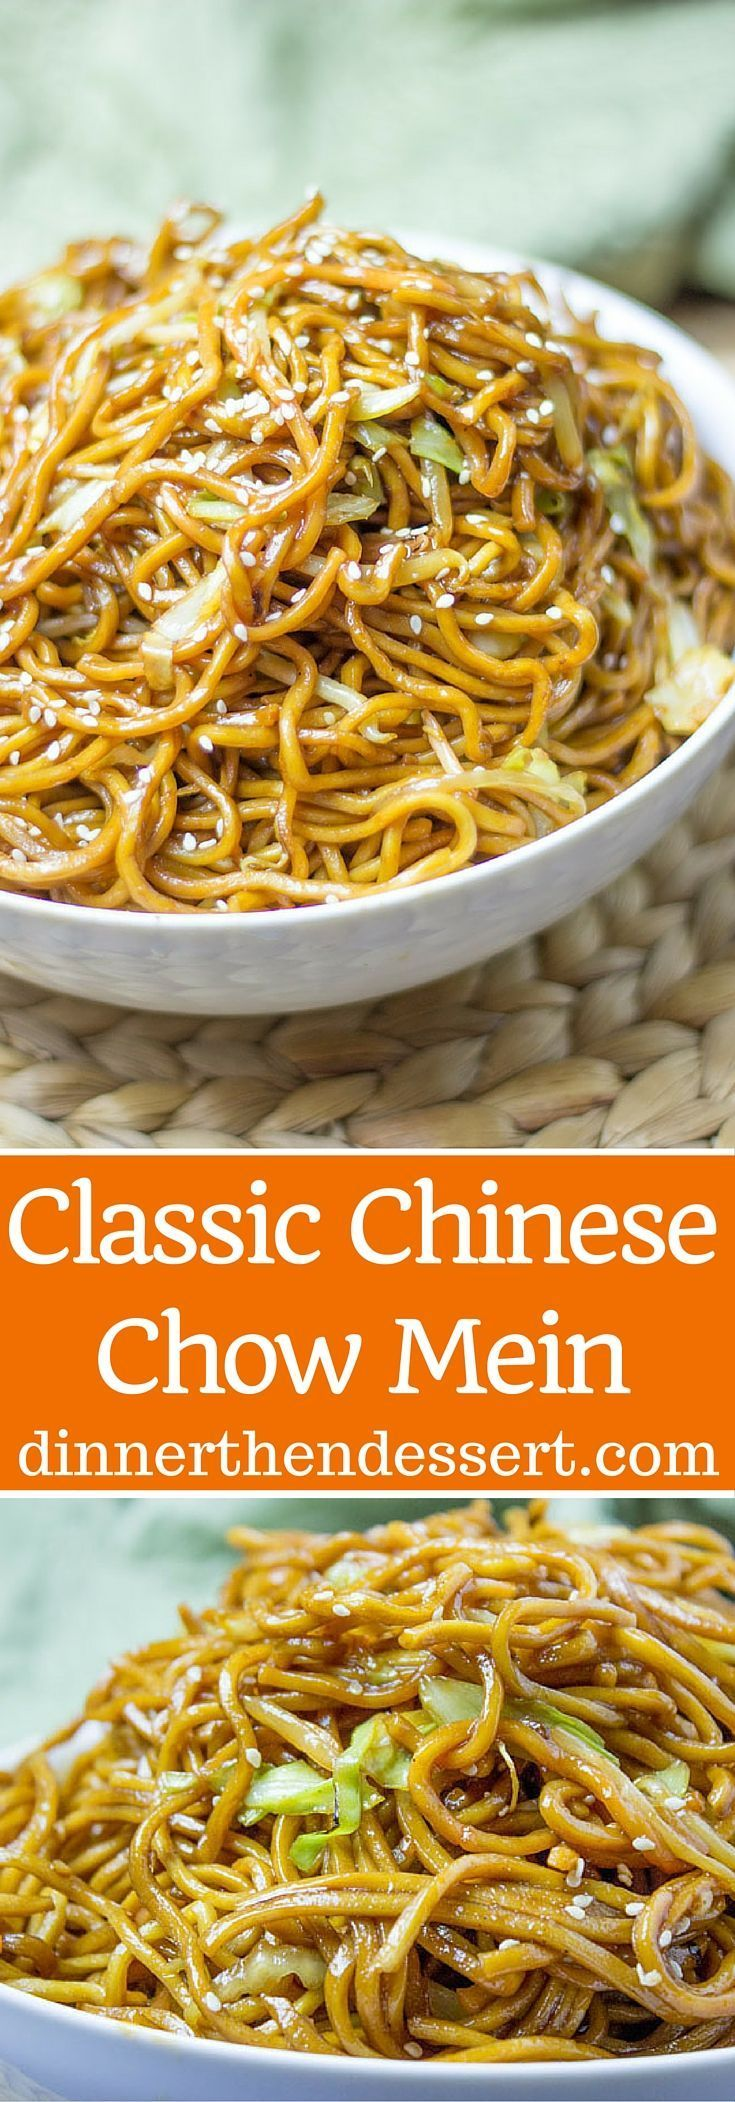 284 best chinese food recipes images on pinterest classic chinese chow mein with authentic ingredients and easy ingredient swaps to make this a pantry forumfinder Image collections